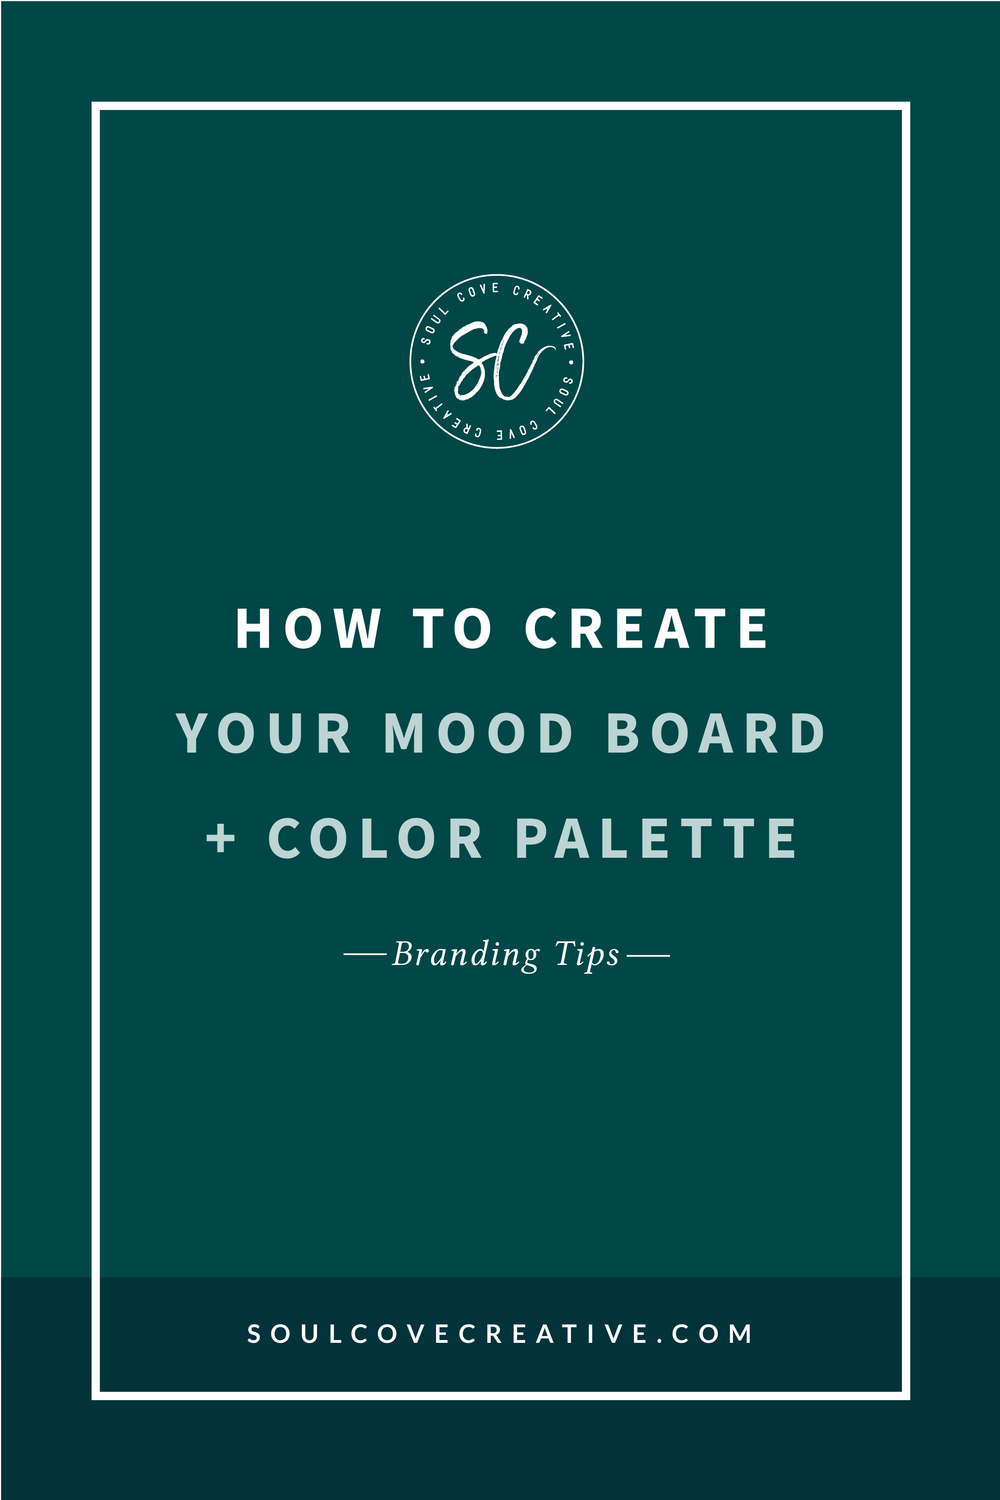 How to Create your Mood Board + Color Palette